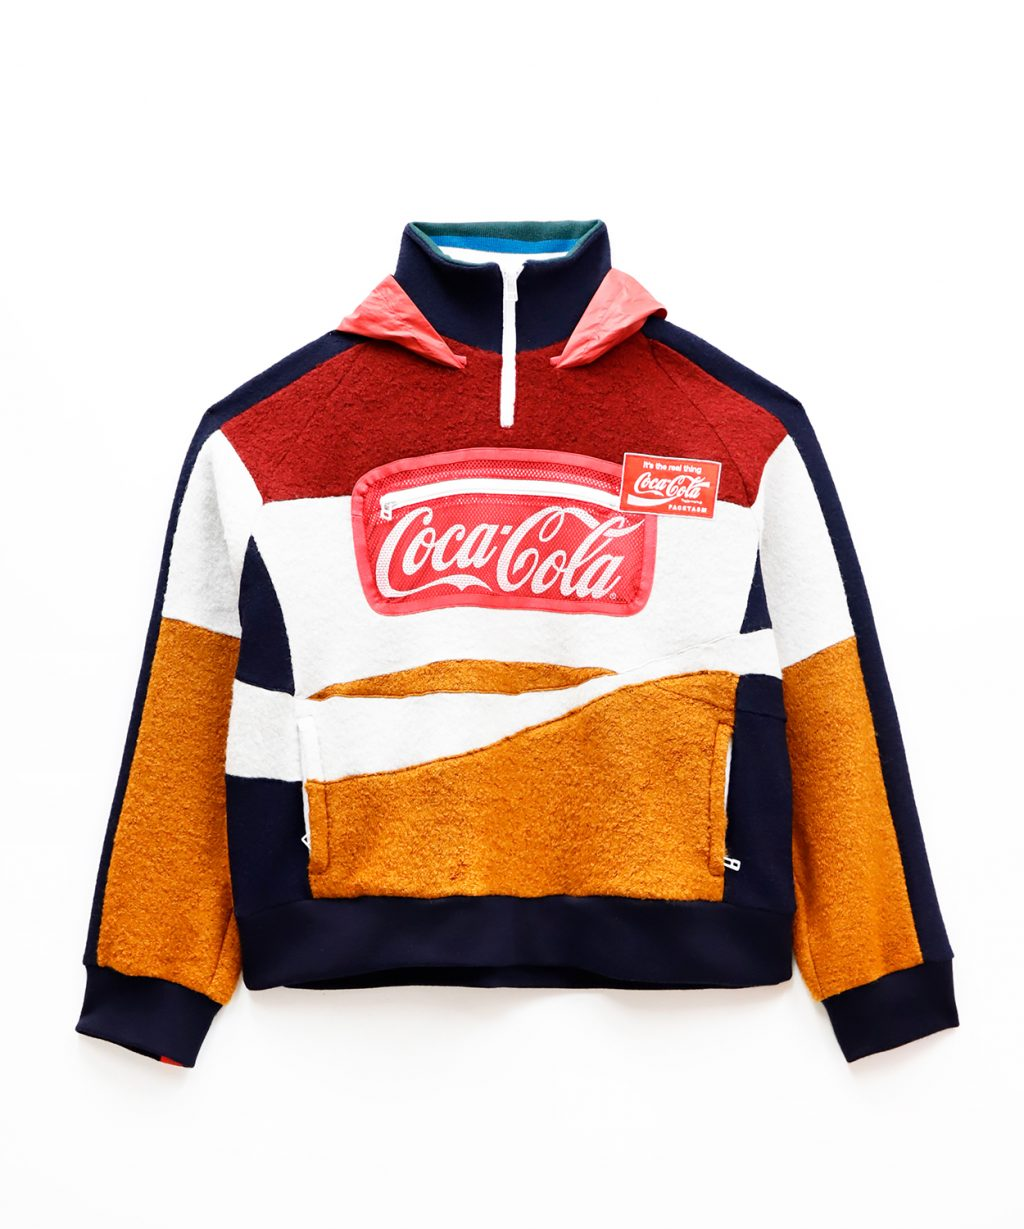 COCA-COLA-MIX-BIG-HOODIE-red1-1024x1229.jpg